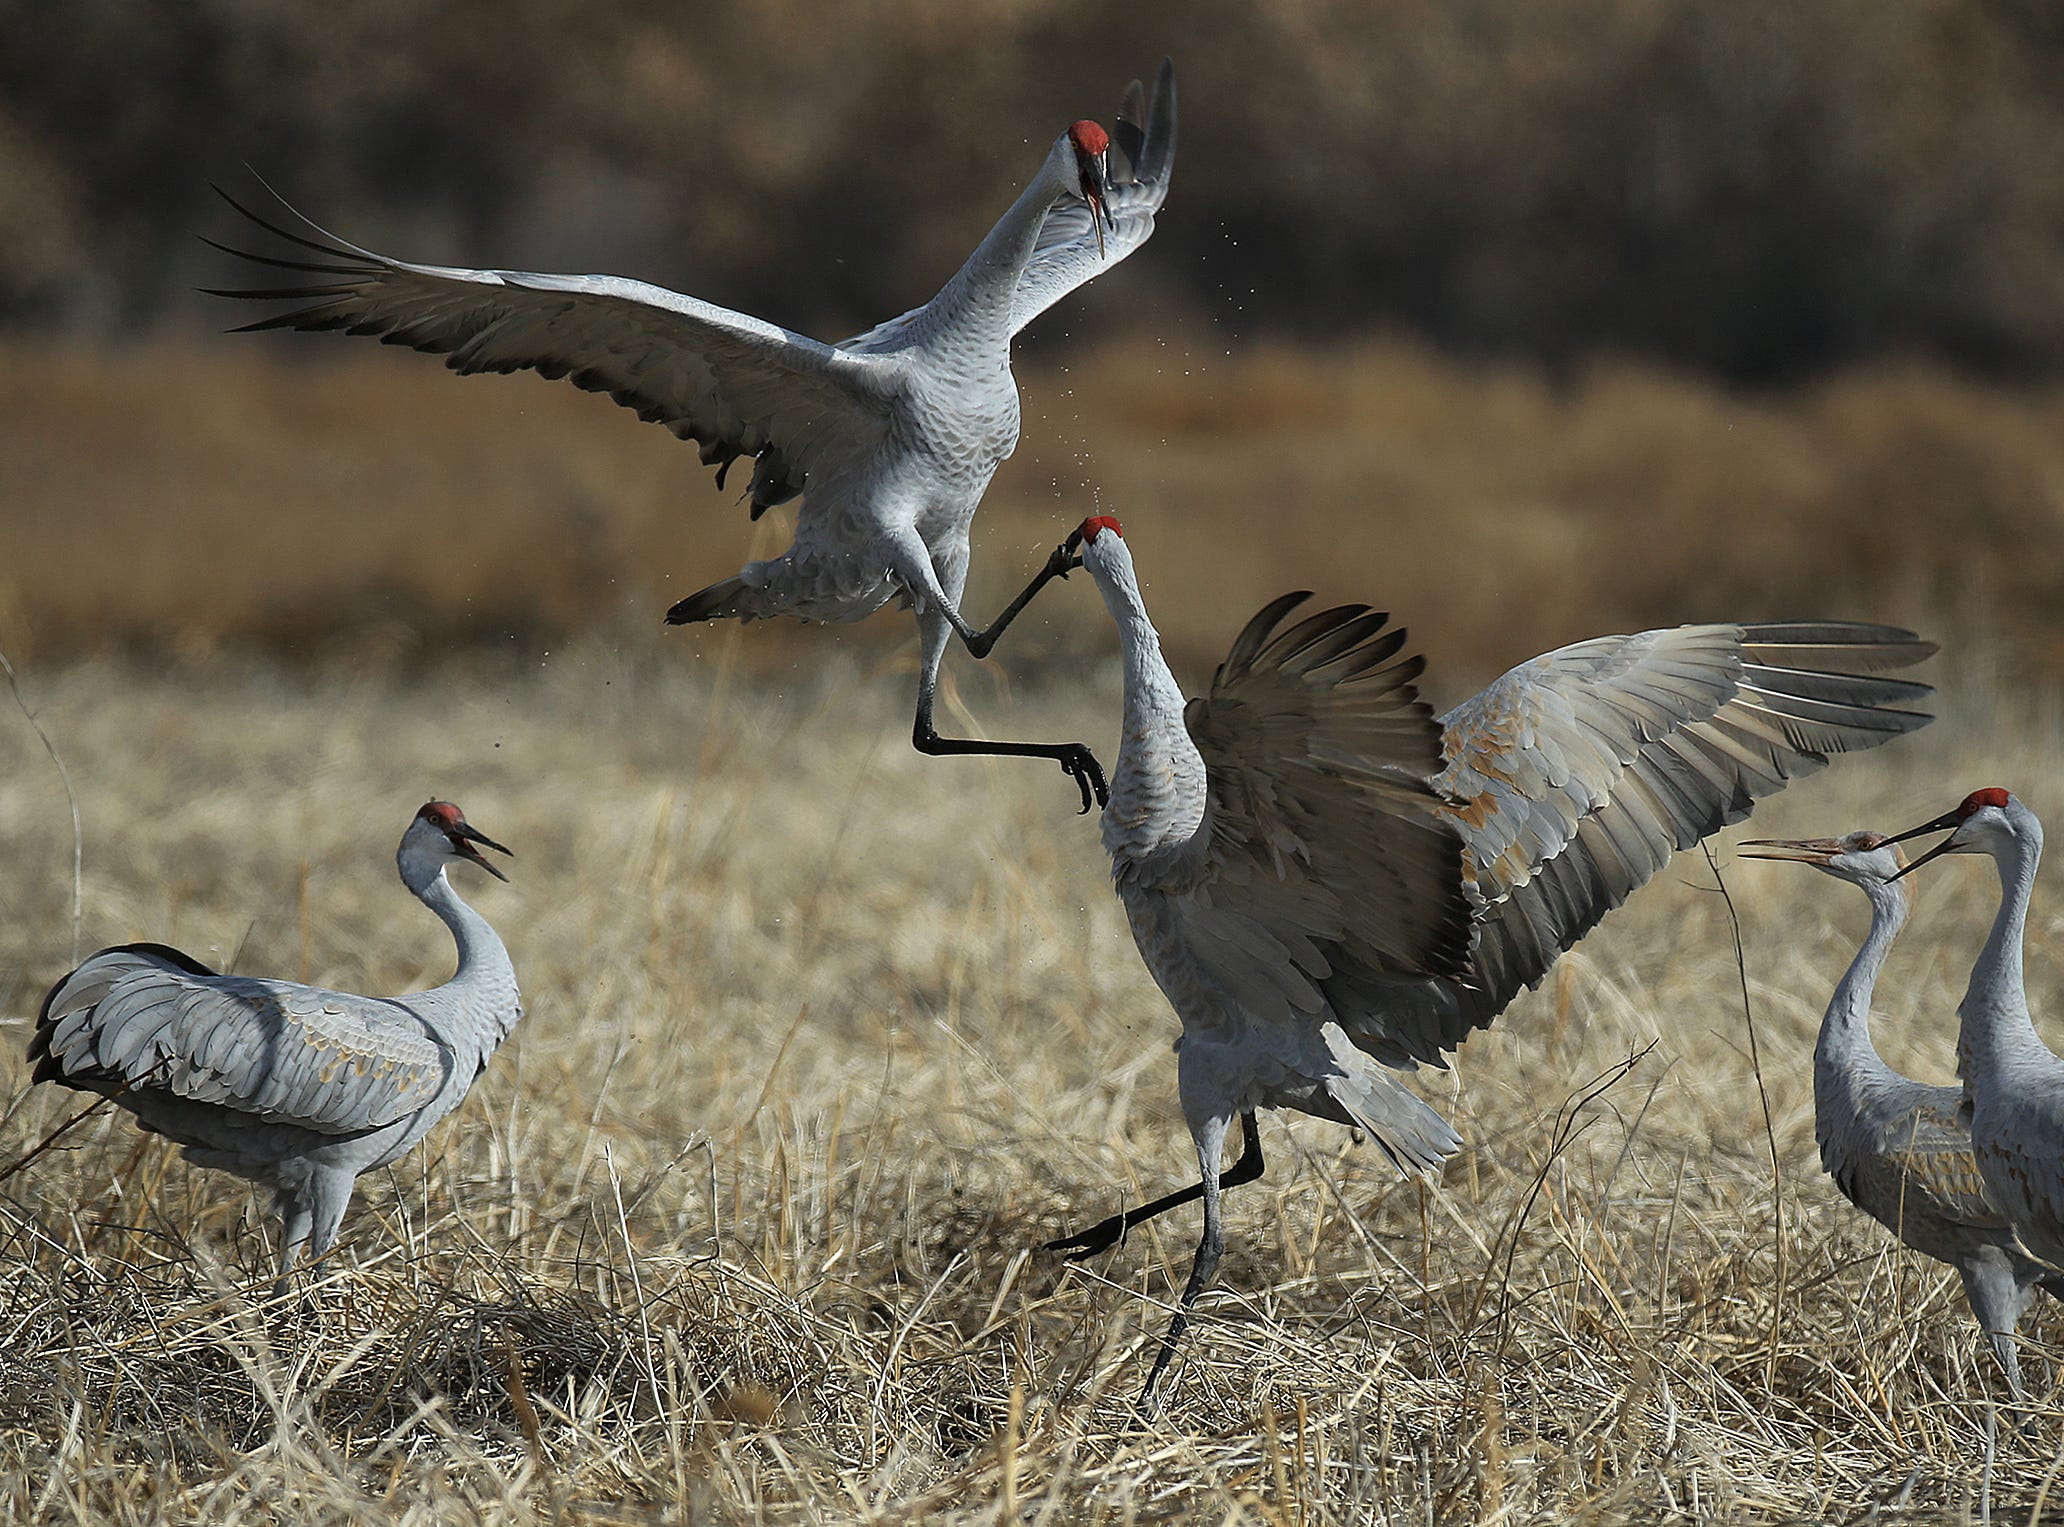 Migratory birds arrive at Bosque del Apache National Wildlife Refuge